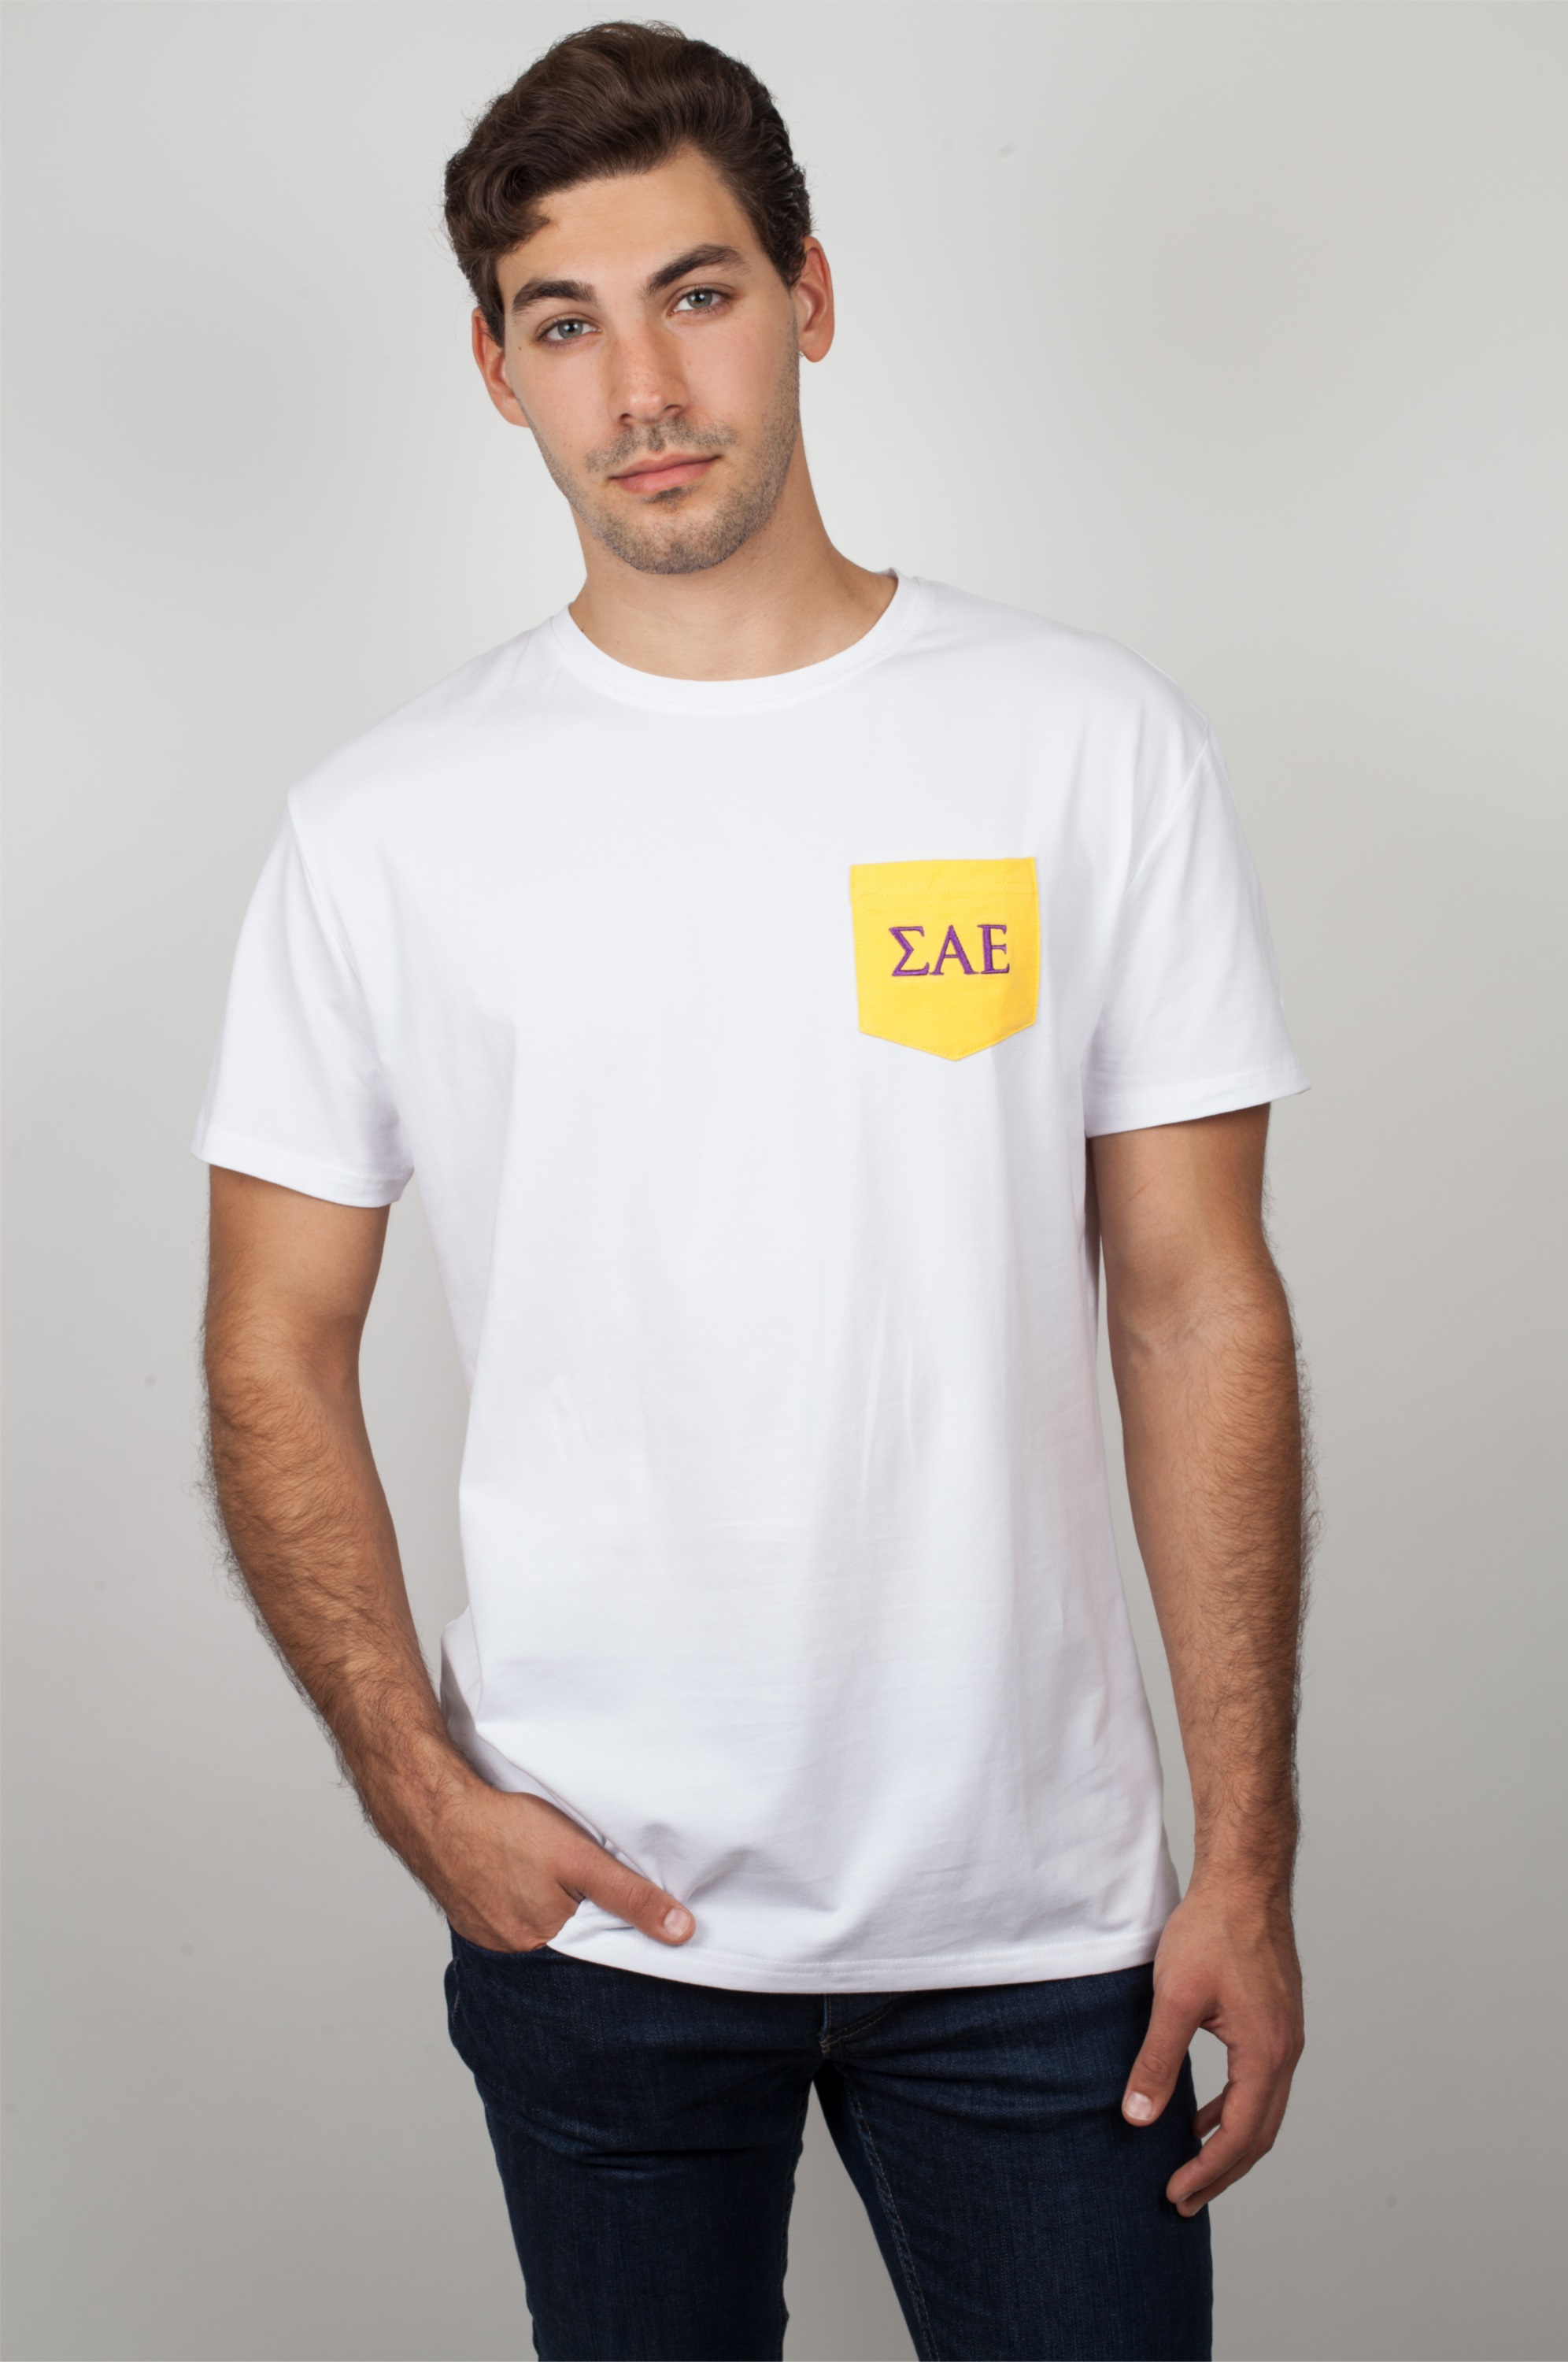 SAE Clothing. We know how important it is to look your best as a Sigma Alpha Epsilon. Campus Classics has the best SAE t-shirts, tanks, sweatshirts, and jackets to fit in any style!